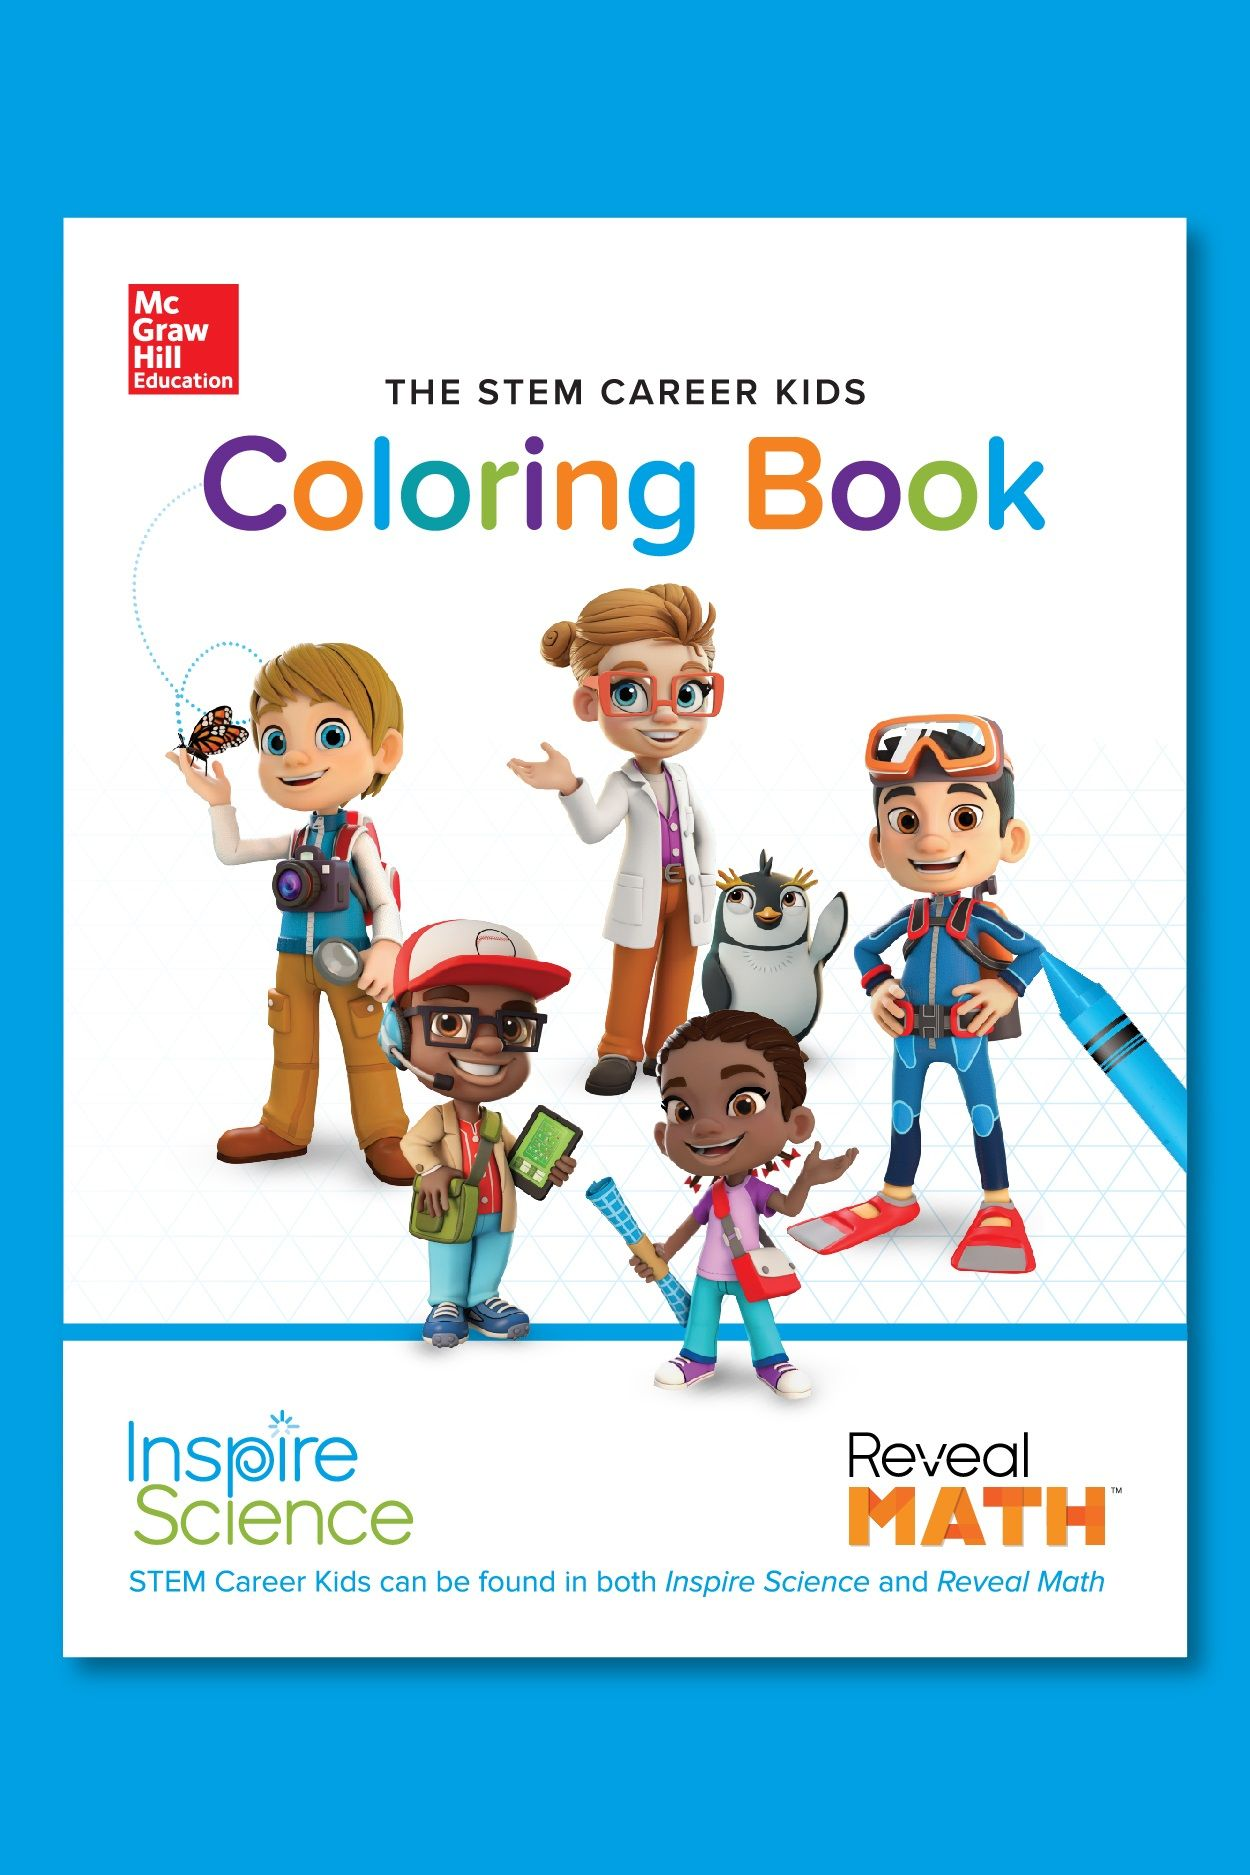 Download Our Exclusive Coloring Book To Share With Young